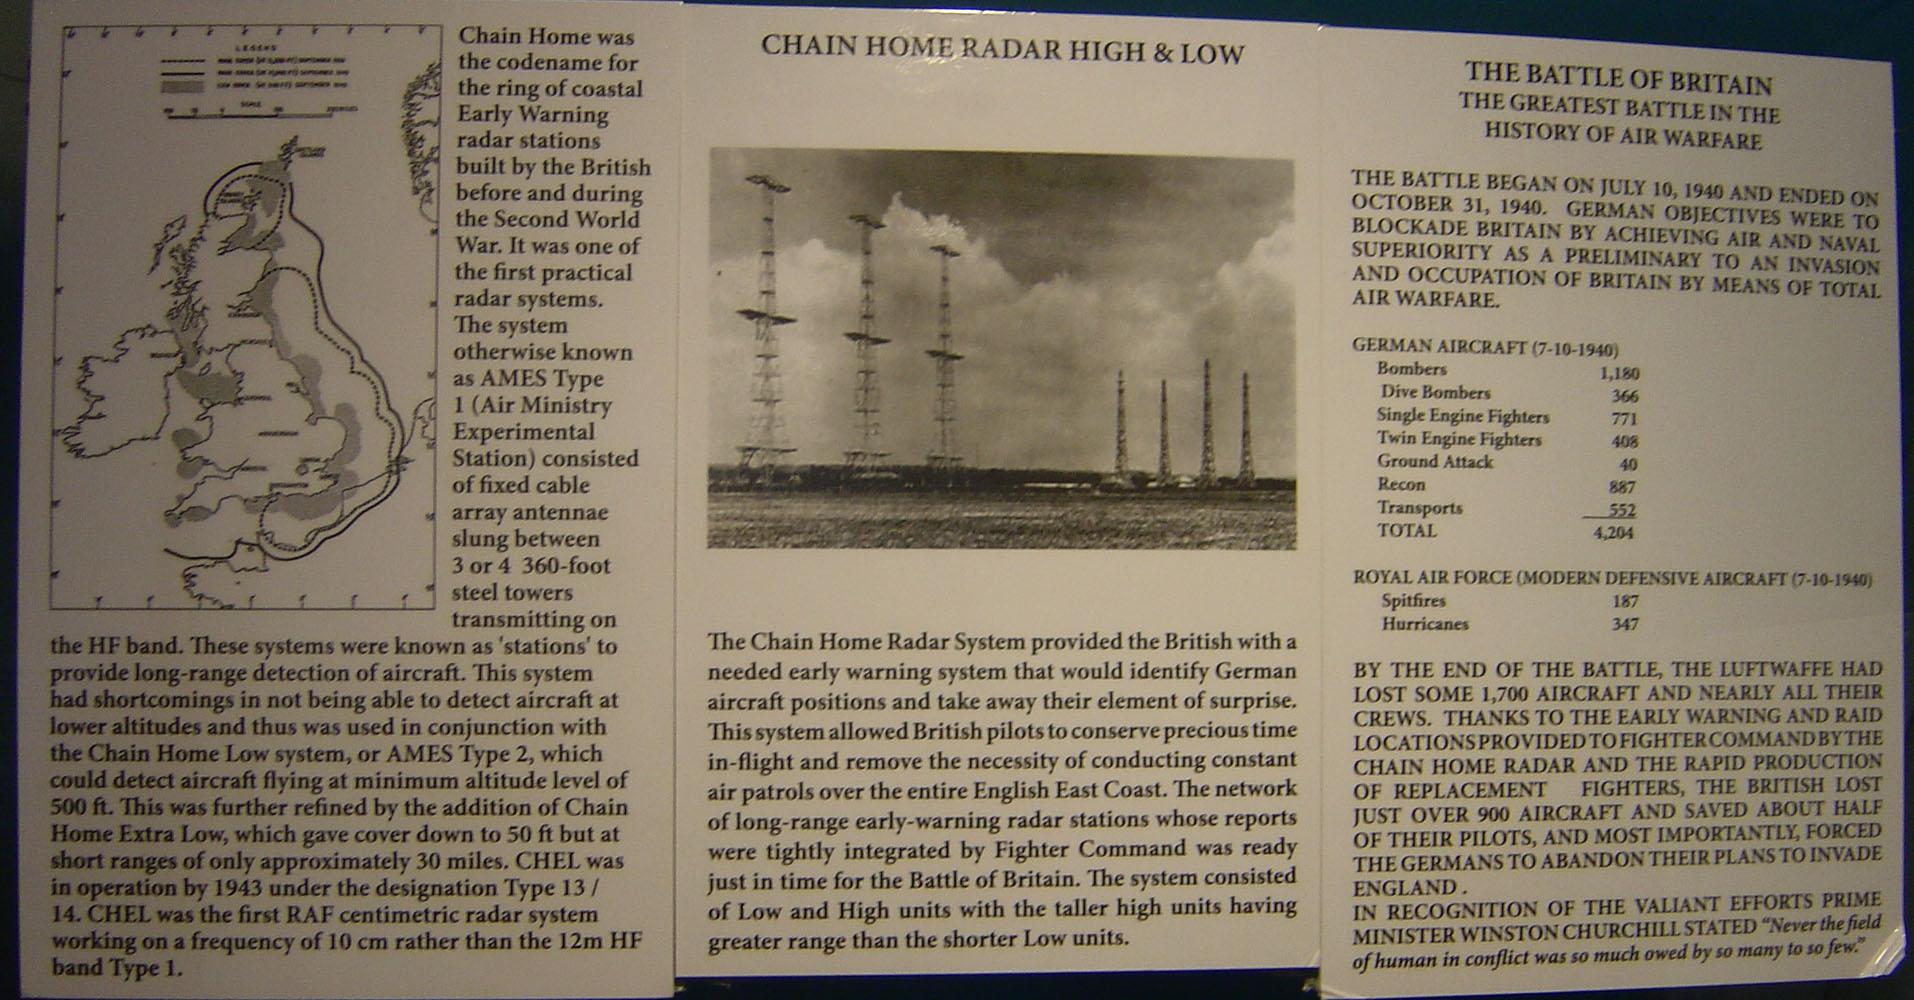 British Chain Home Radar High and Low